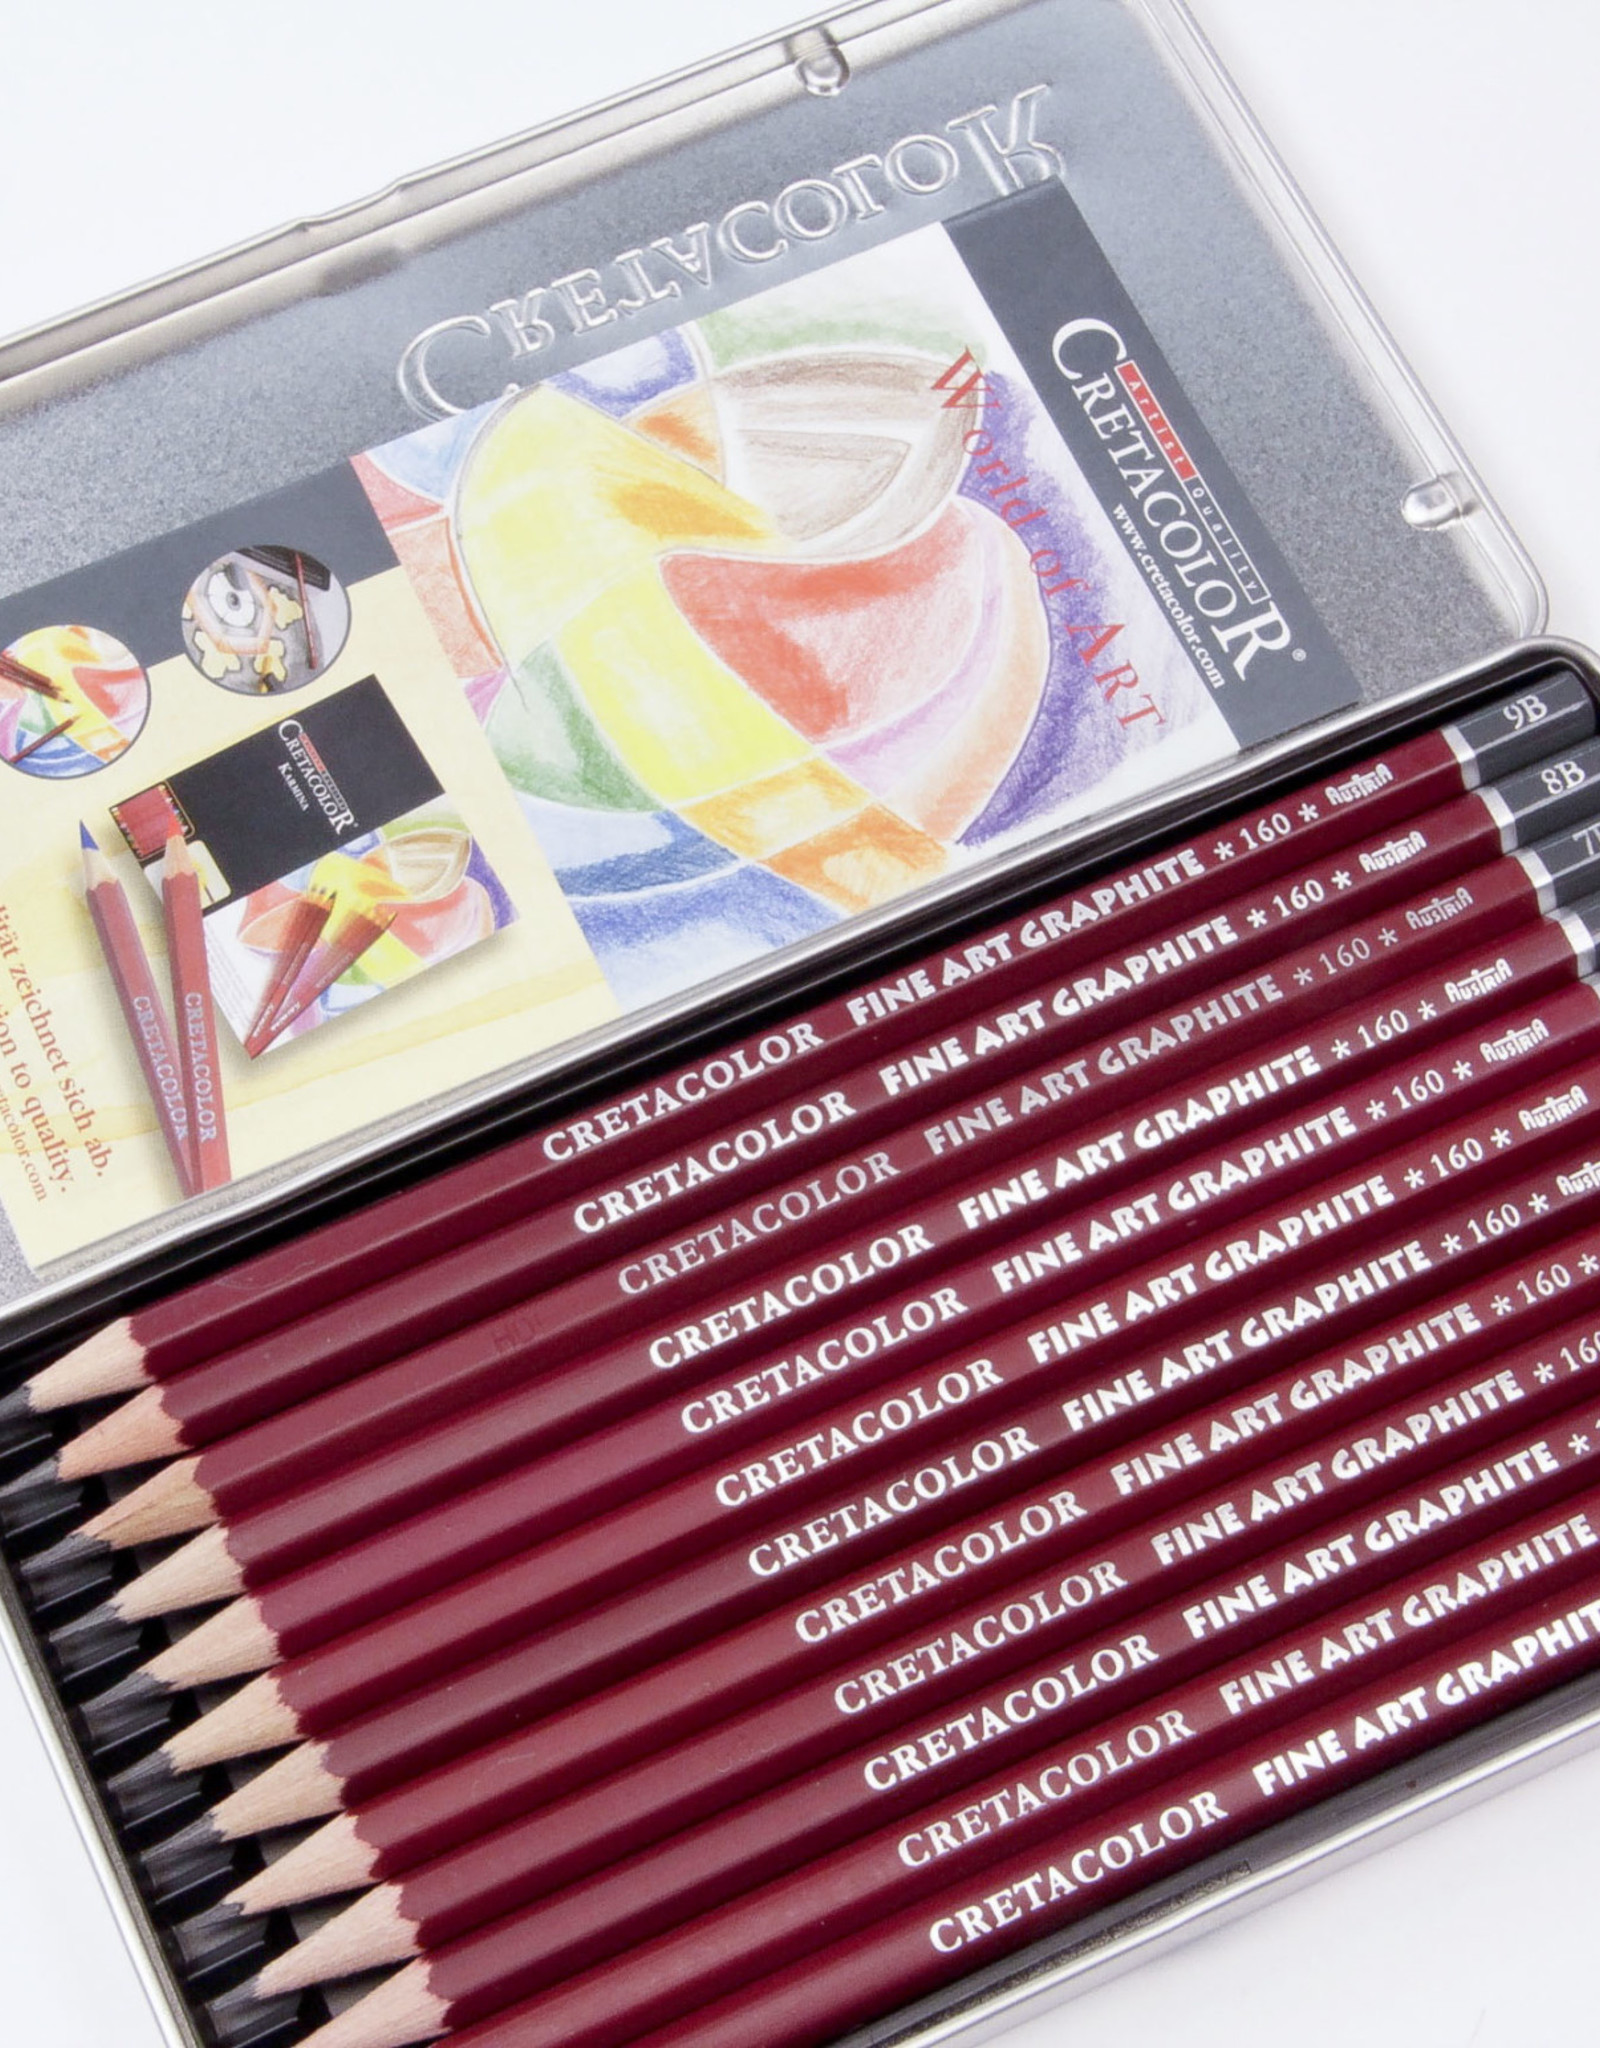 Cretacolor, Fine Art Graphite Set of 12 Pencils